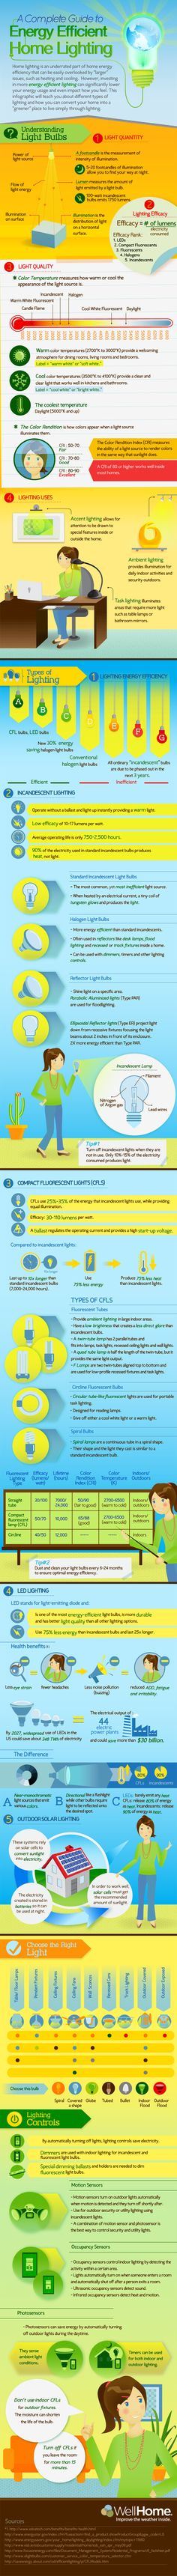 Infographic: A Complete Guide to Energy Efficient Home Lighting